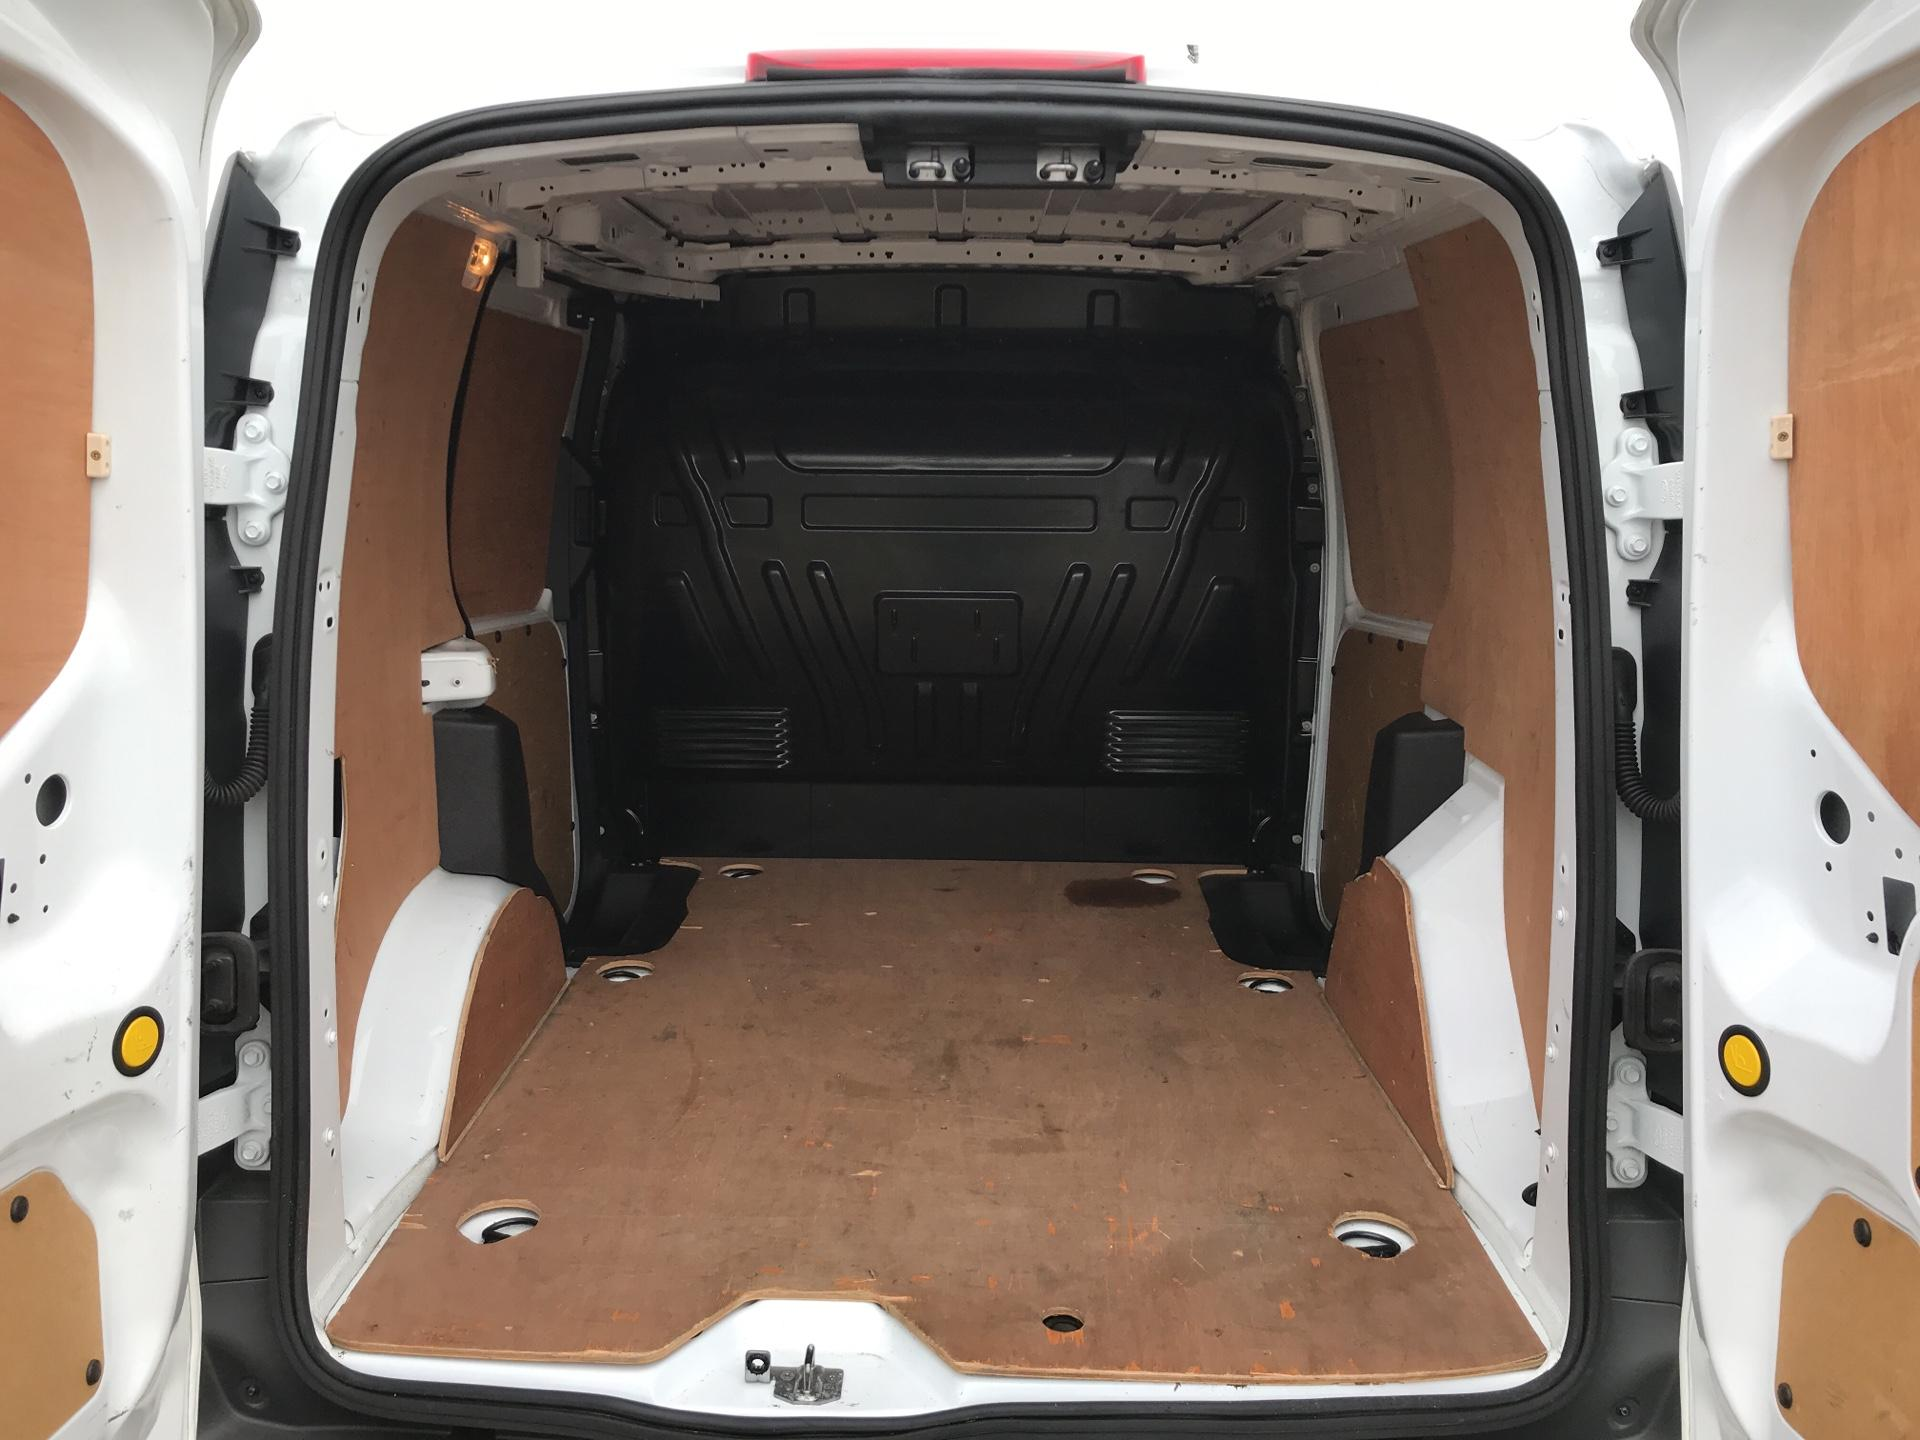 2016 Ford Transit Connect 200 L1 DIESEL 1.6 Tdci 75Ps Van EURO 5 (FN16VCW) Image 17